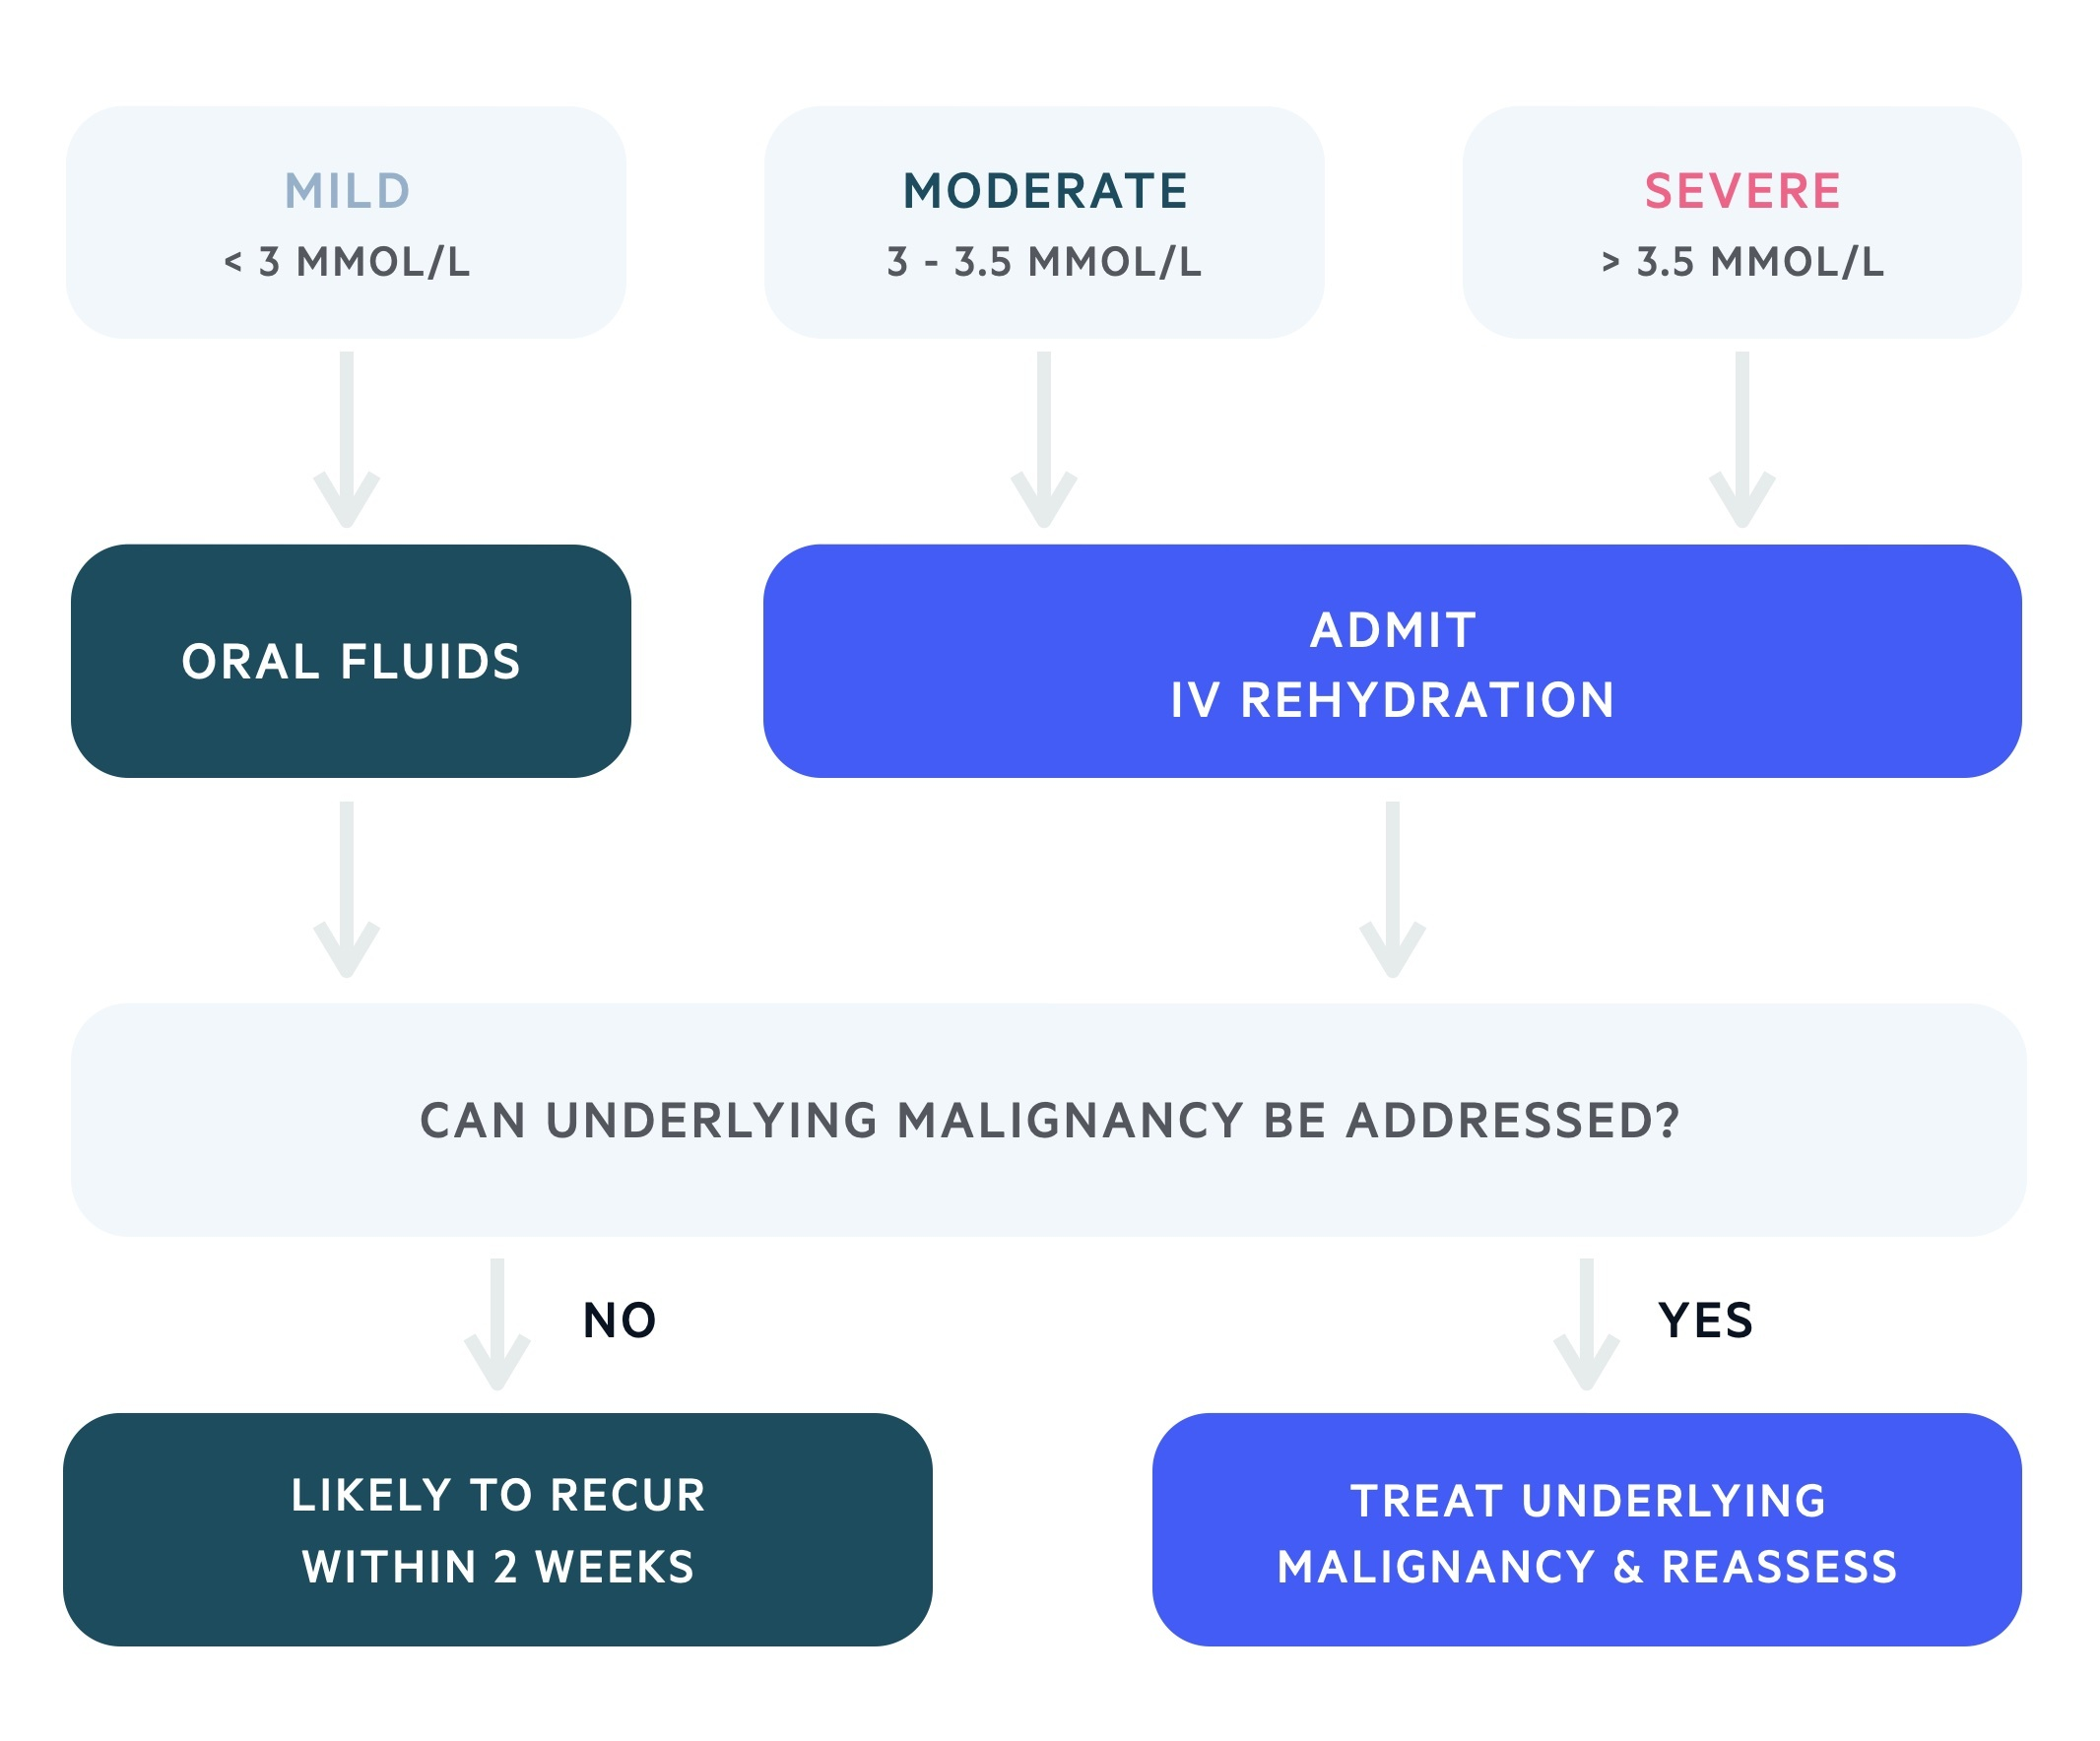 Management of malignant hypercalcaemia